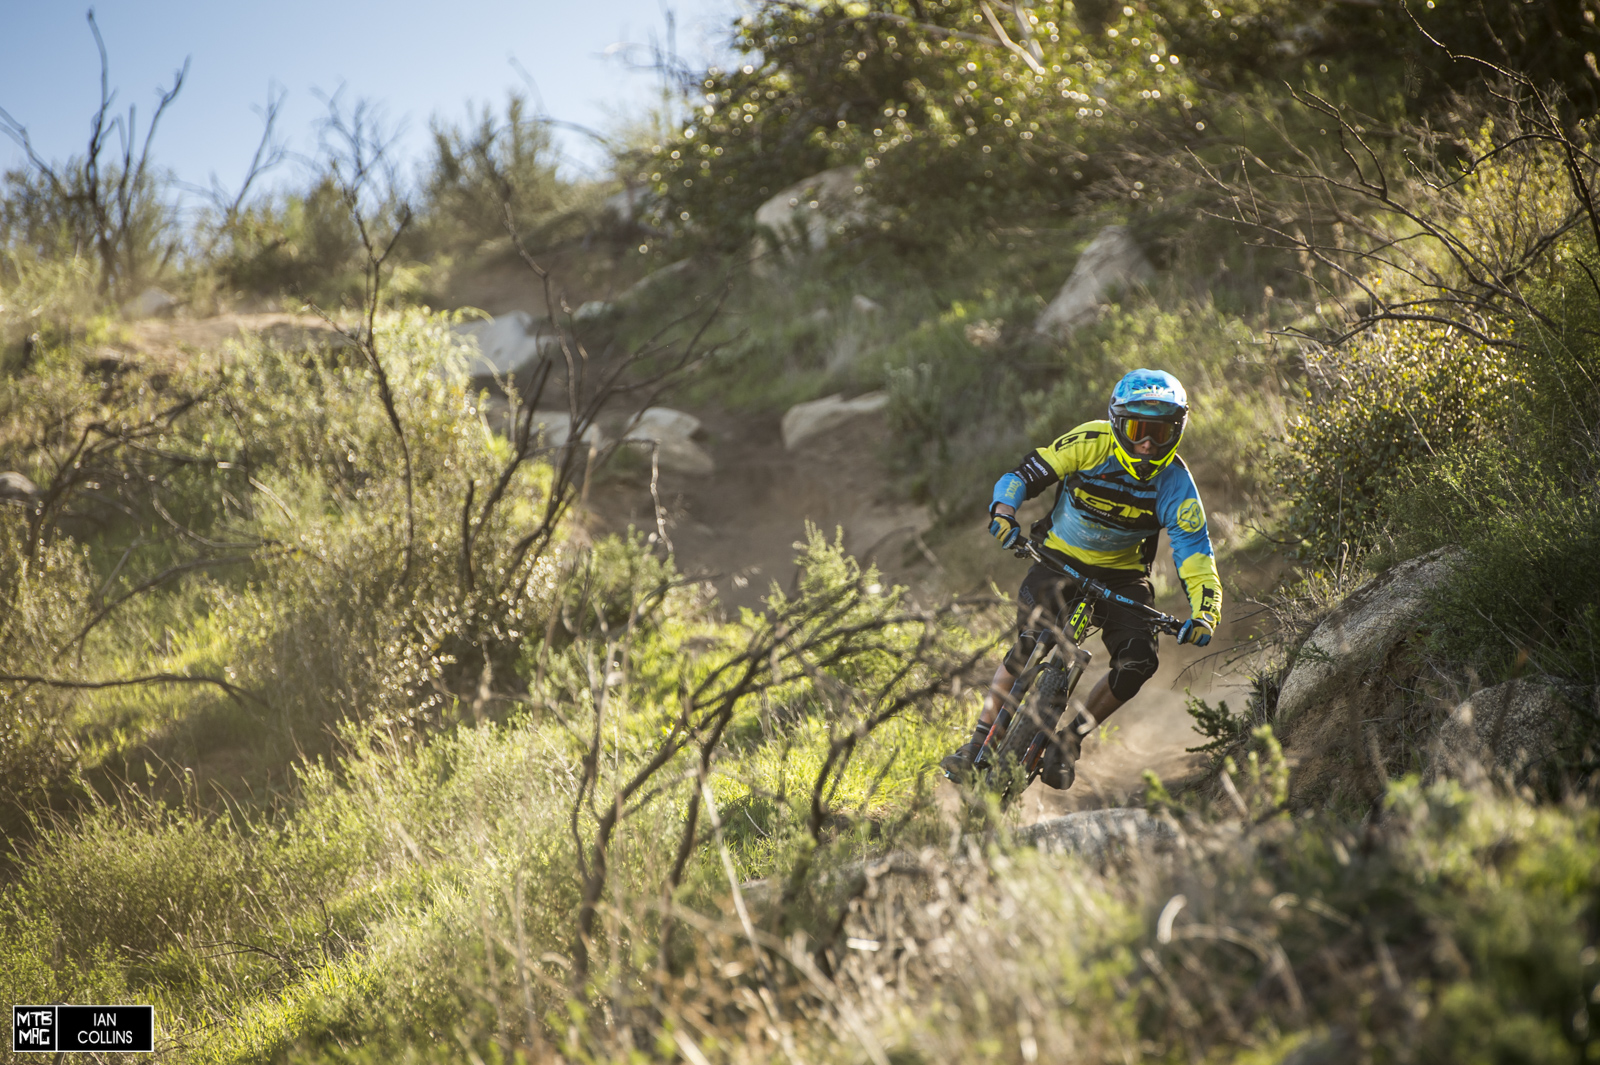 One of the reasons that Martin Maes is so fast is that he rides his Sanction ALL the time. Even on burly DH tracks. He keeps up with the others just fine.